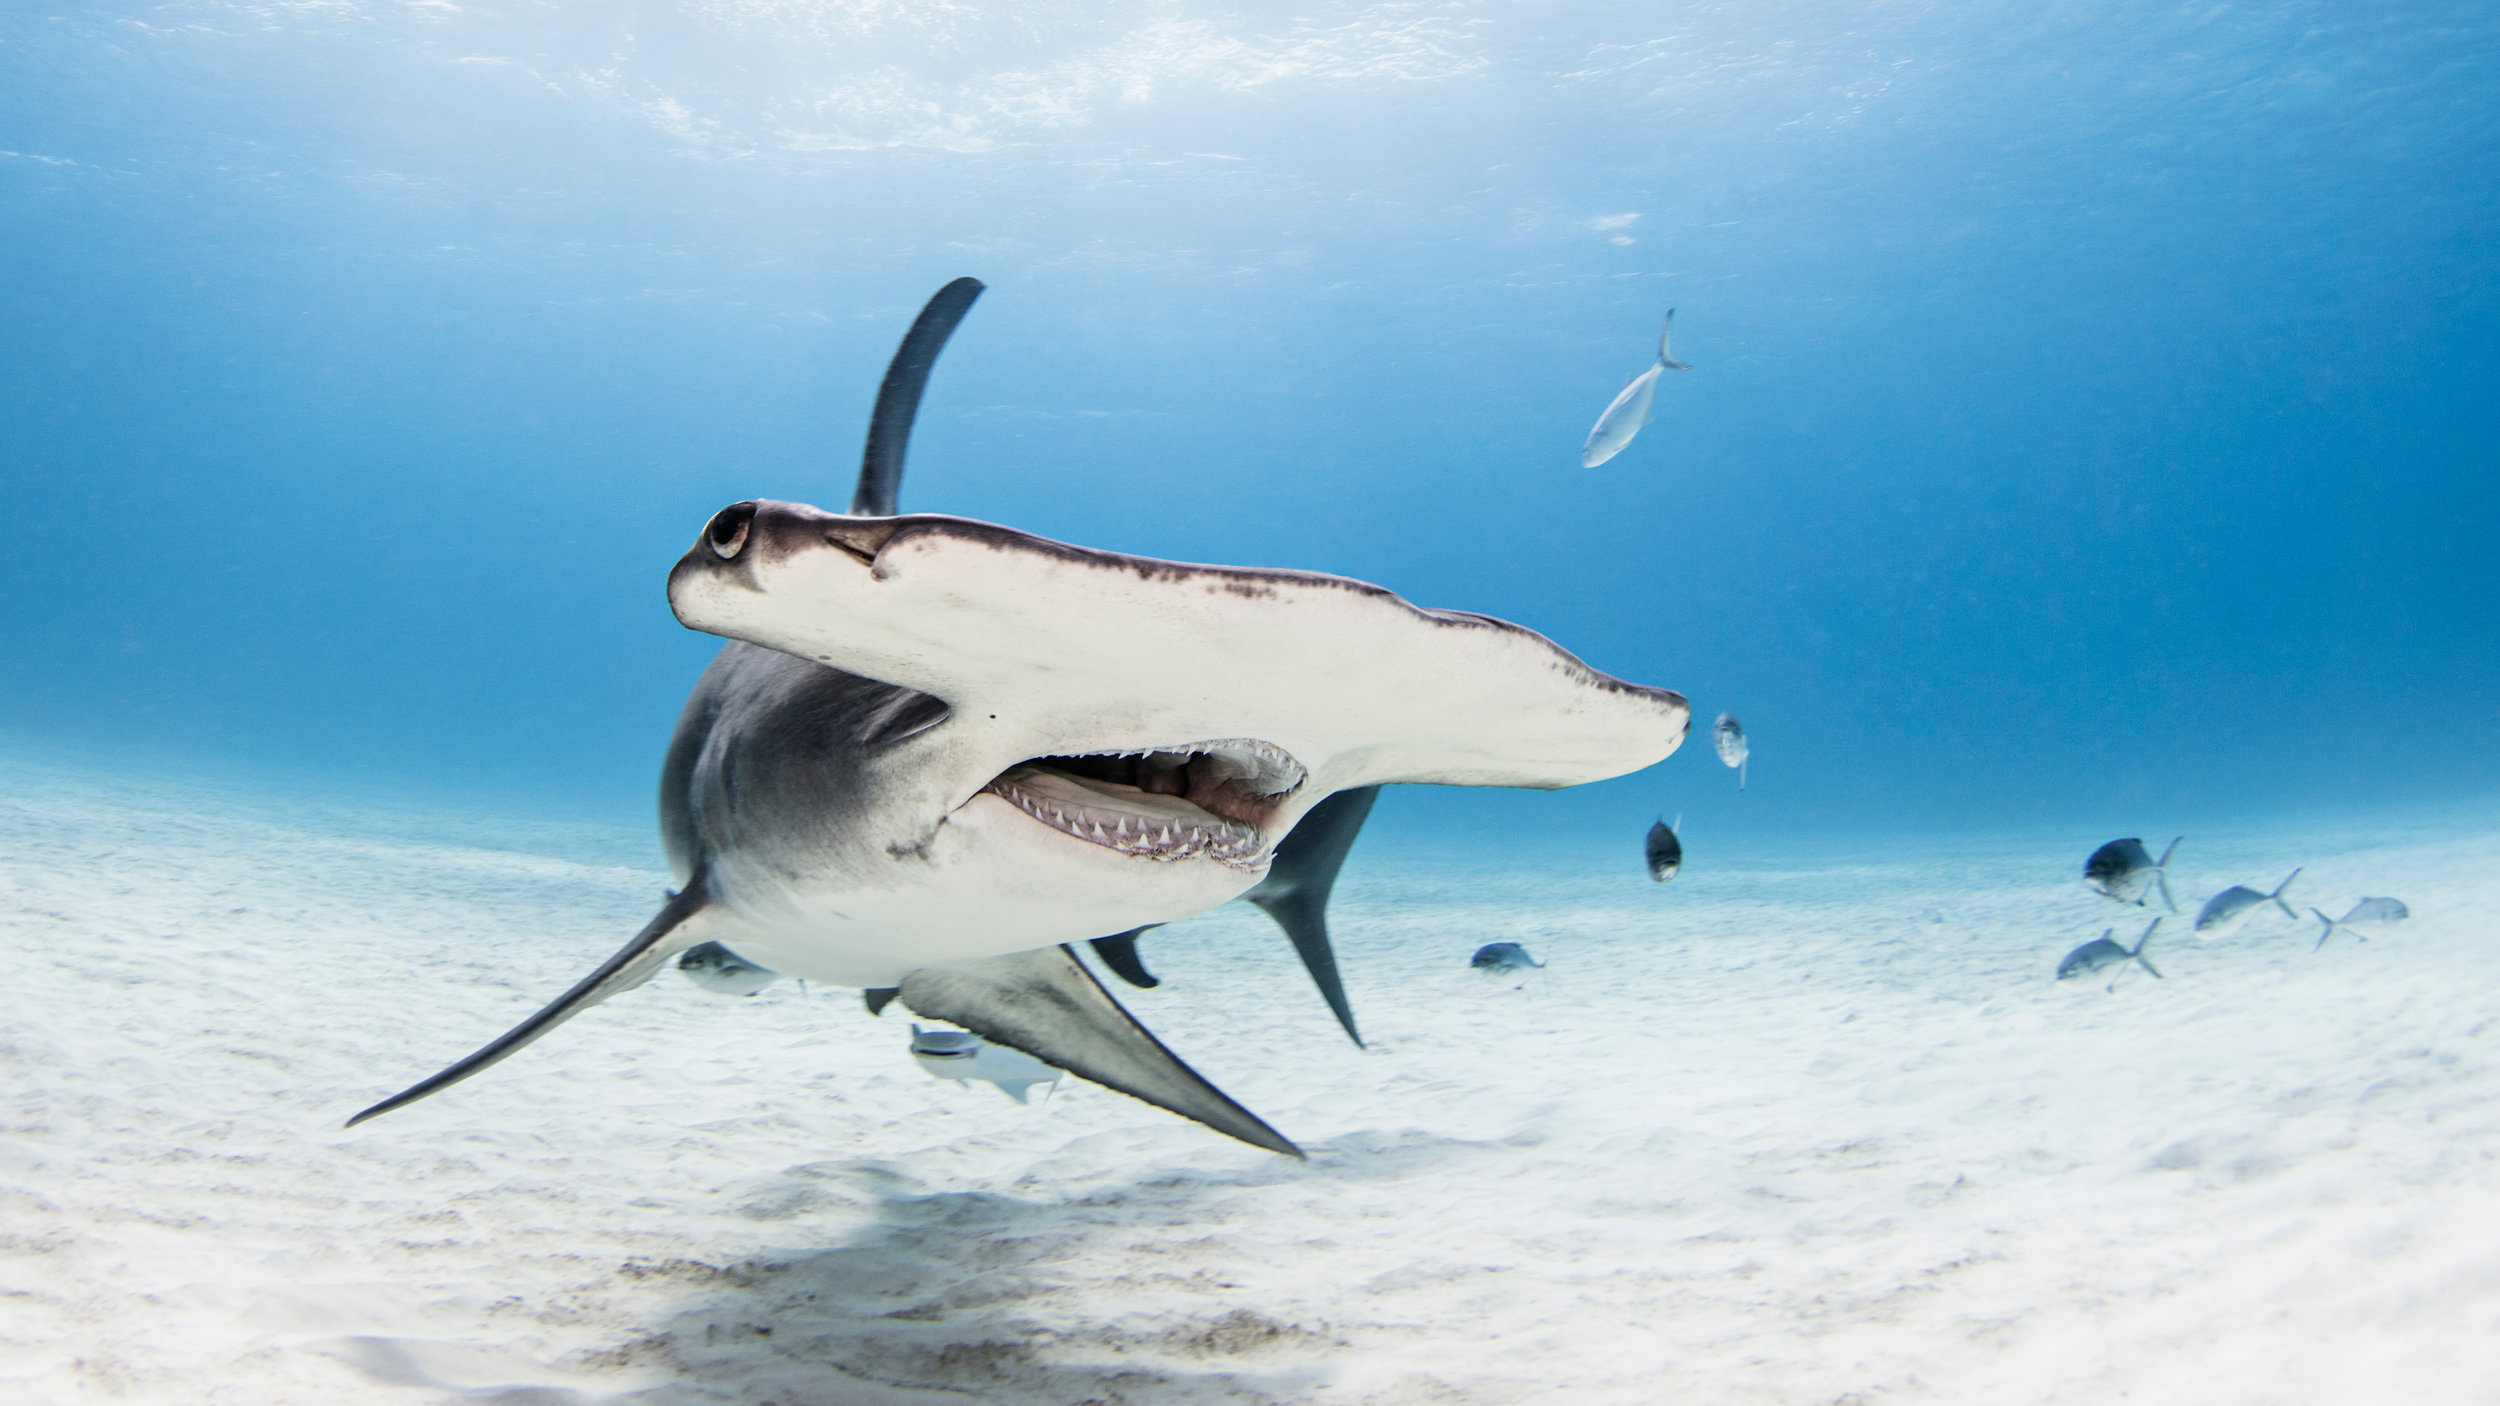 Great Hammerhead in Bimini, Bahamas. Photo © Ken Kiefer